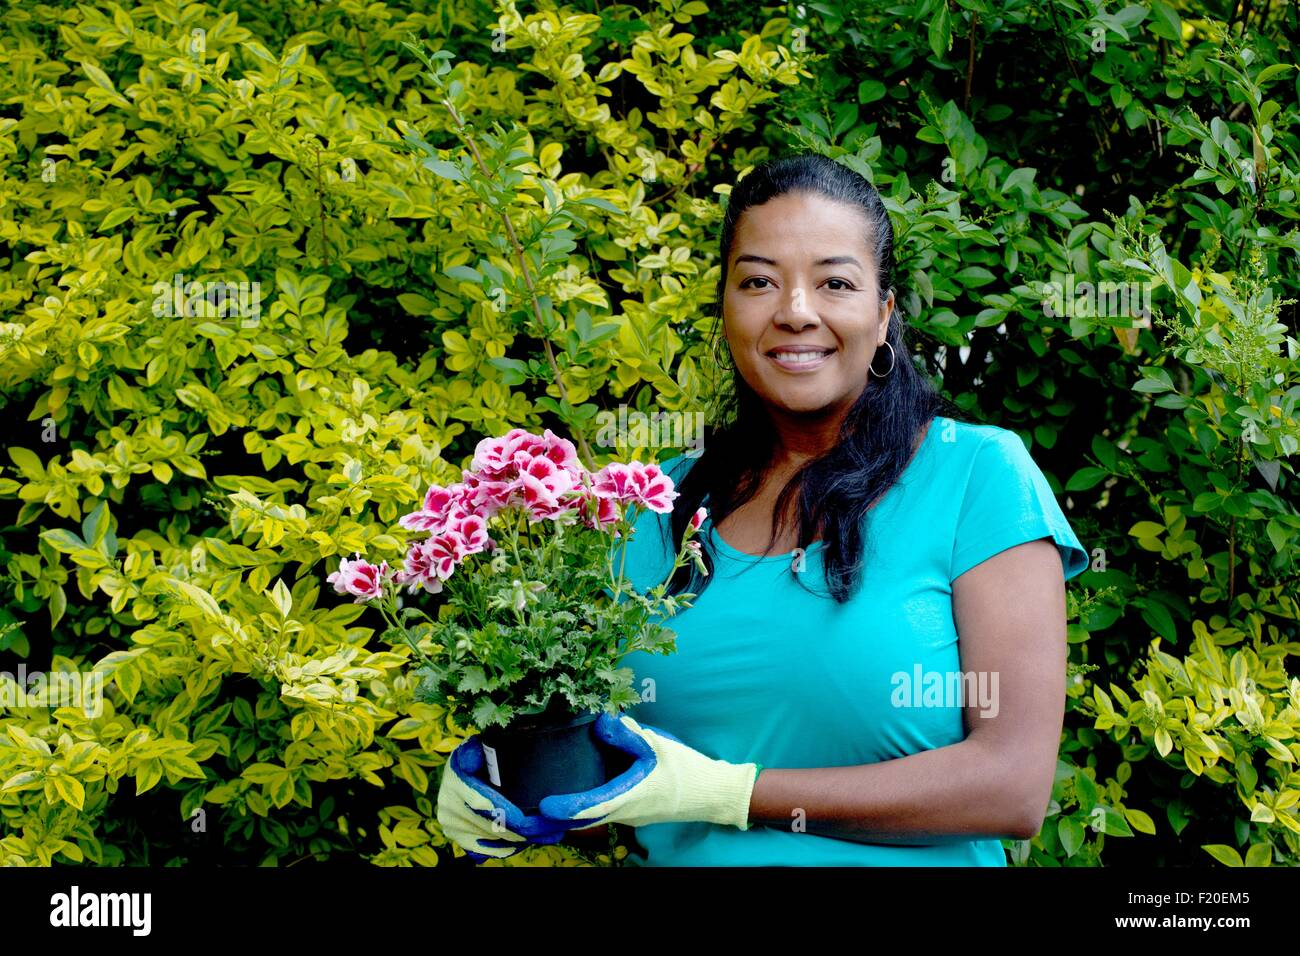 Portrait of mature woman with flowering pot plant in garden - Stock Image